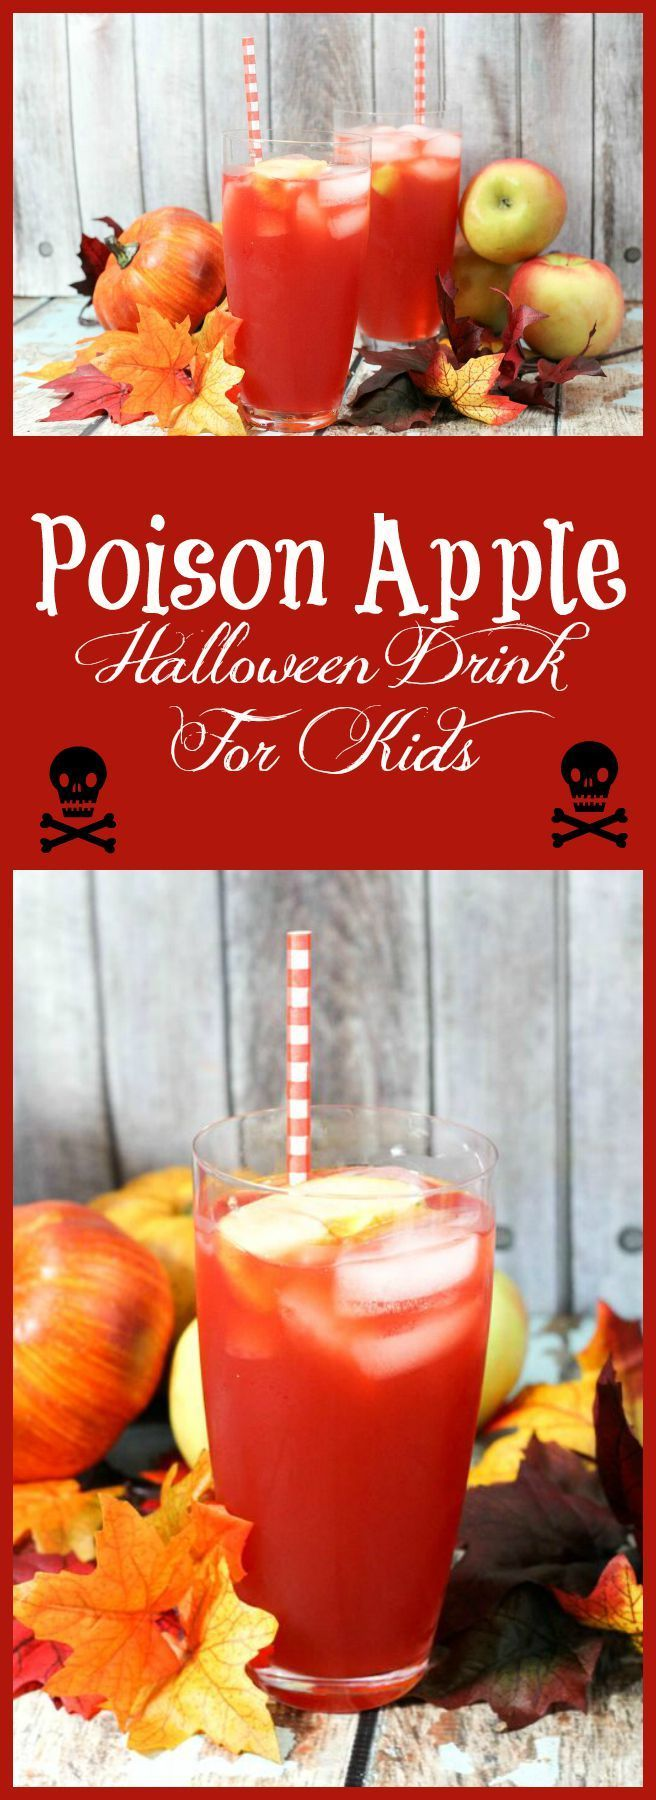 check out this fun poison apple halloween drink recipe for kids along with a great - Great Halloween Drinks